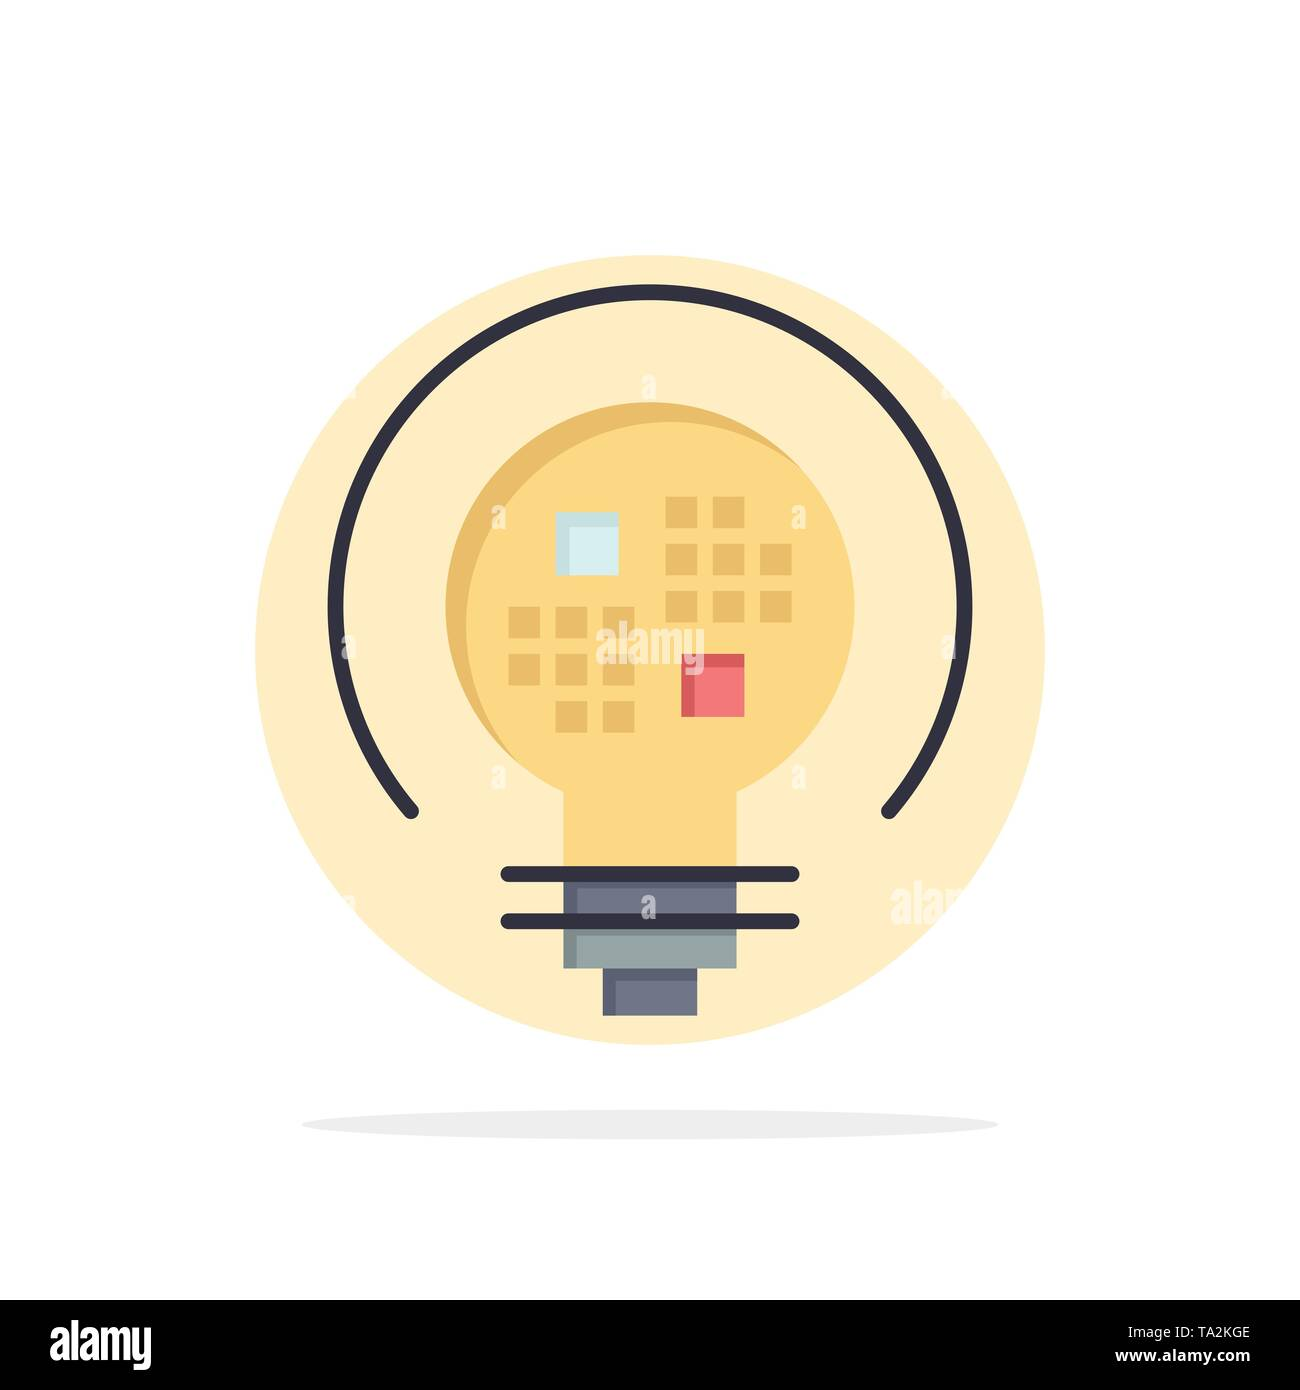 Data, Insight, Light, Bulb Abstract Circle Background Flat color Icon - Stock Image